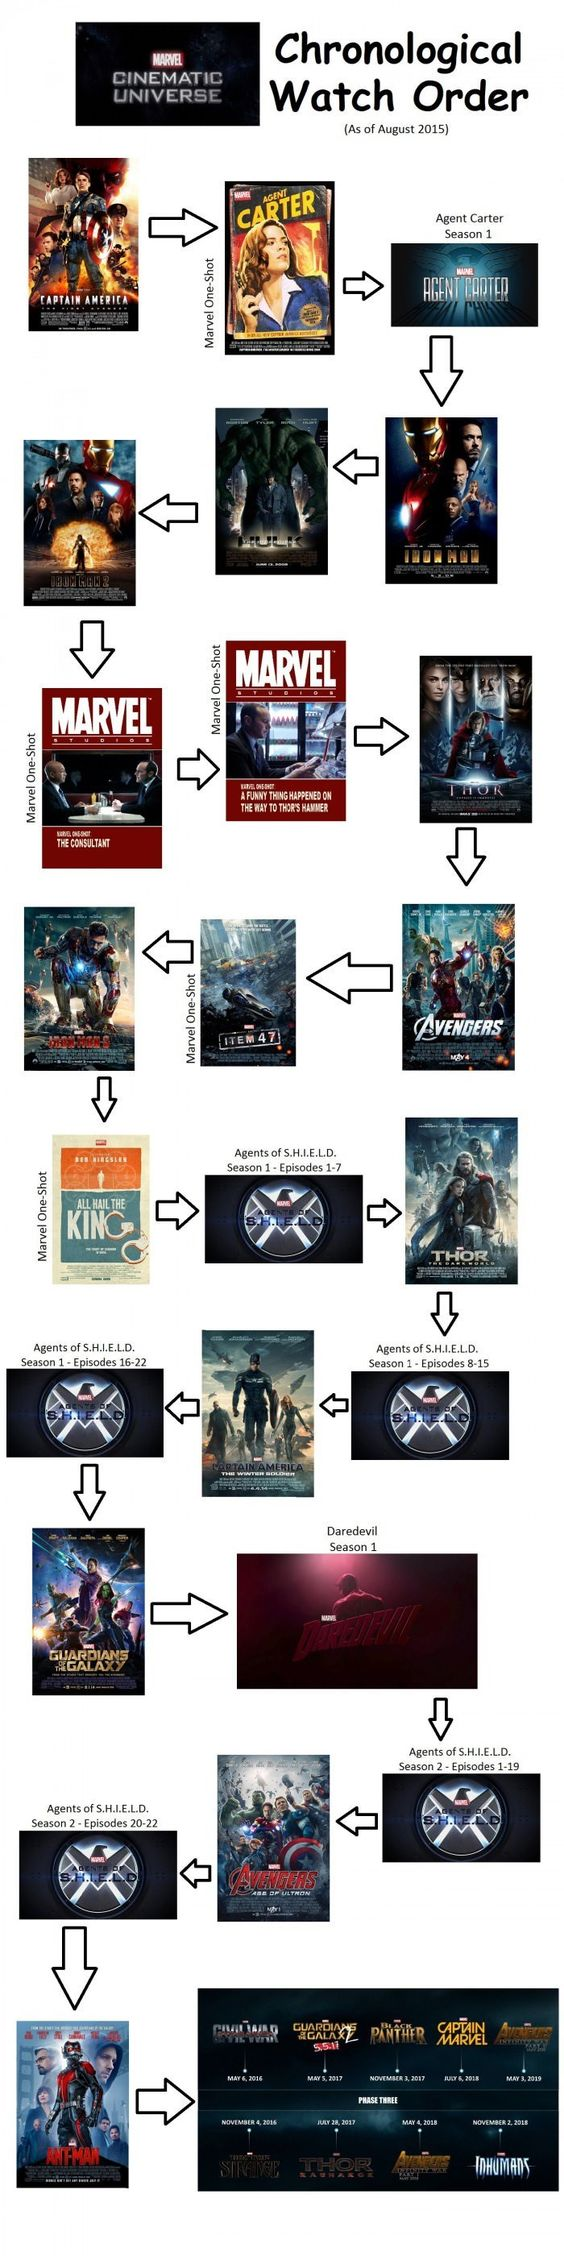 Marvel in Chronological Order SH Avengers Pinterest